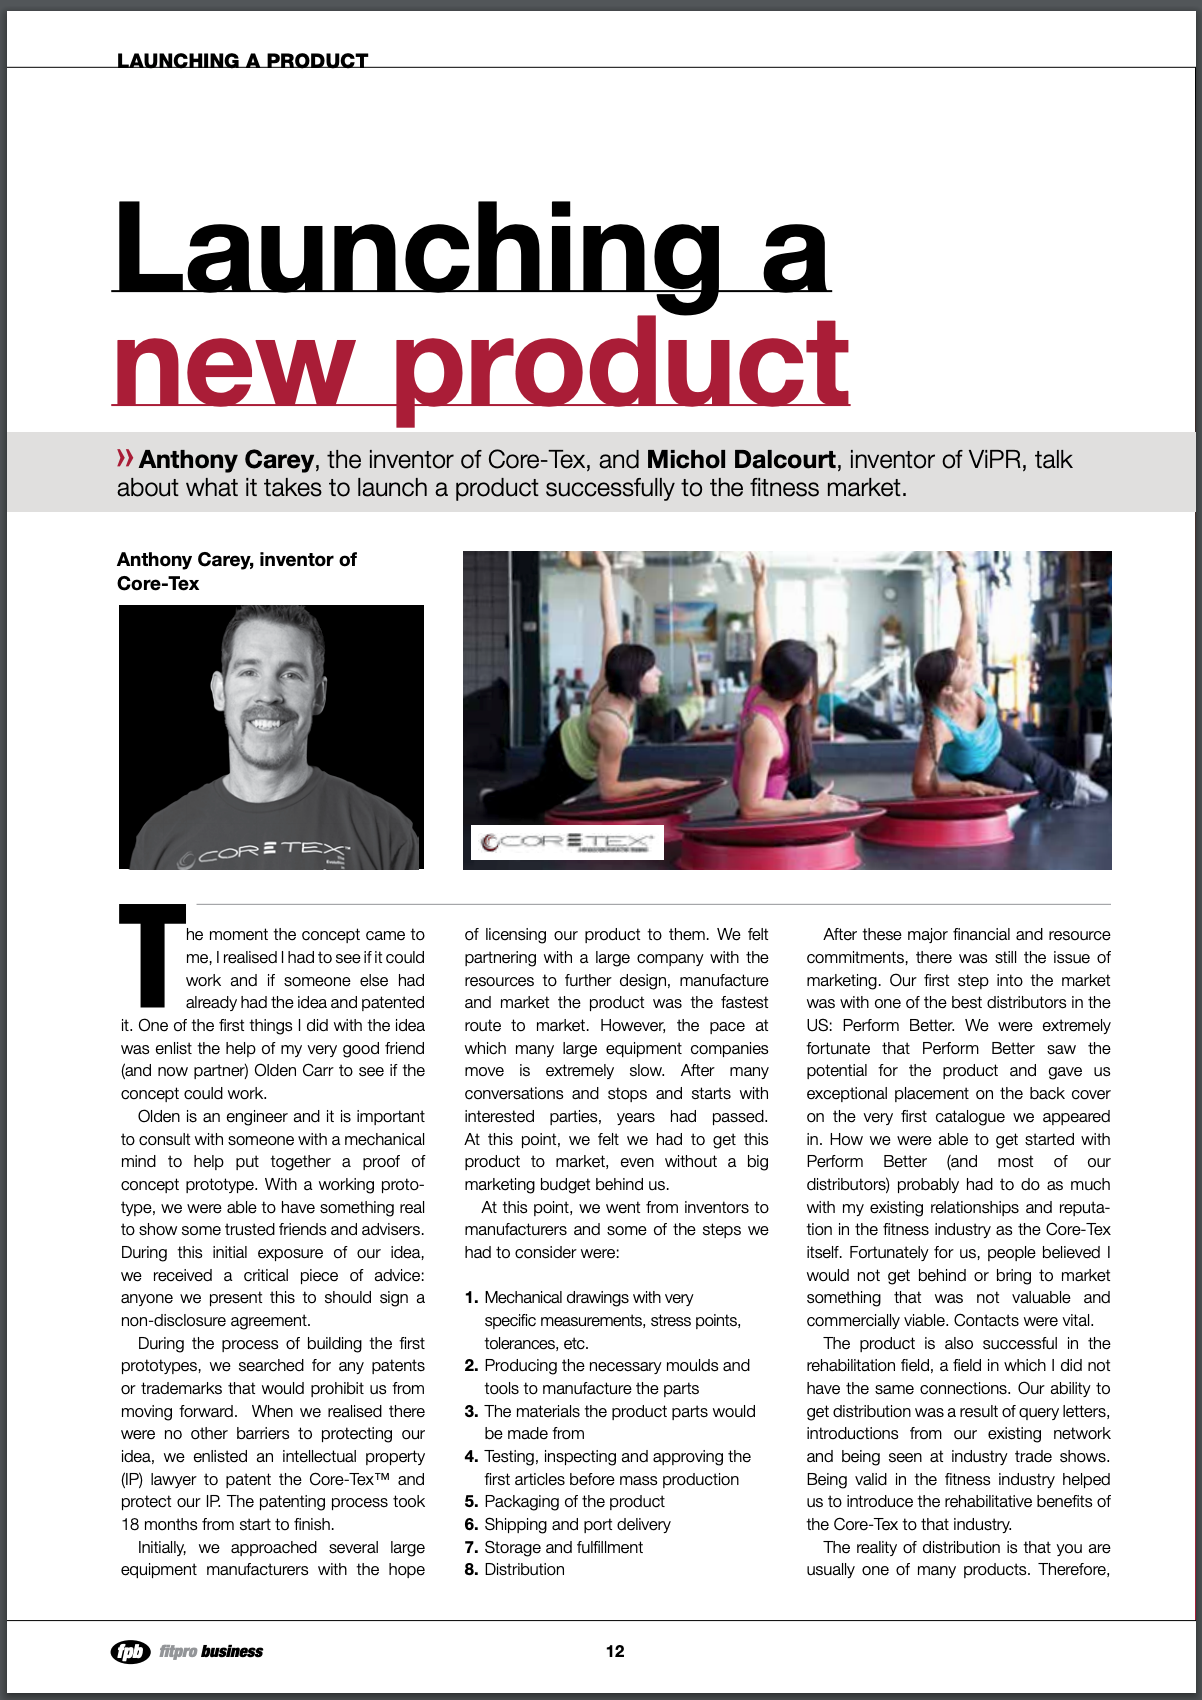 FITPRO BUSINESS MAGAZINE, SPRING 2013: Launching a New Product